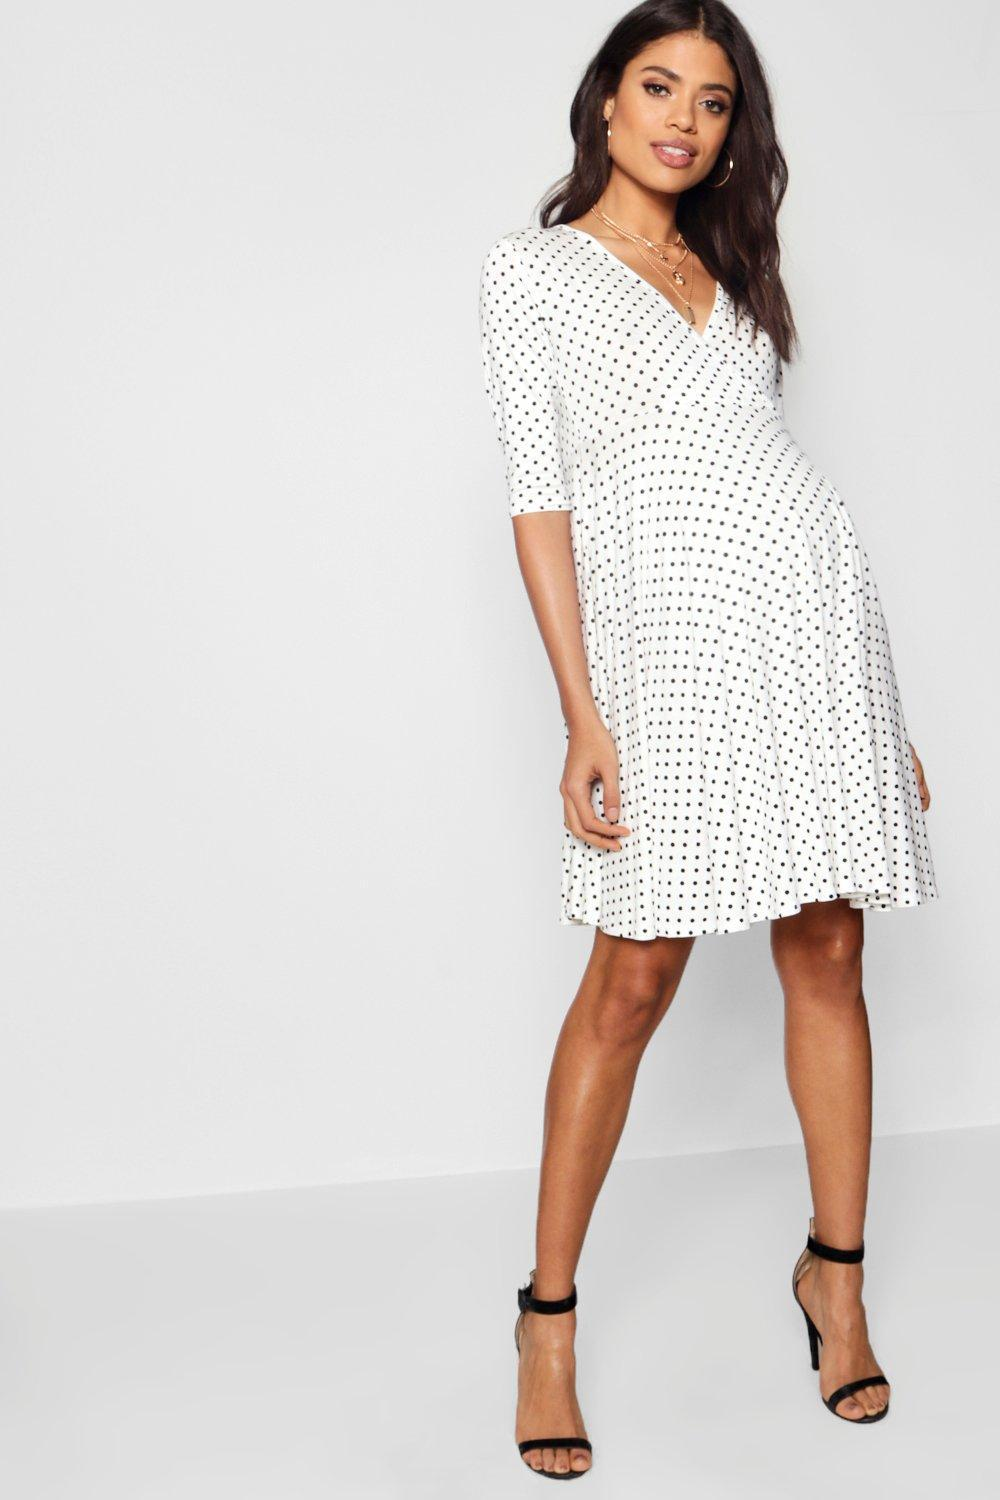 72322717792b Boohoo Maternity Polka Dot Wrap Smock Dress in White - Lyst